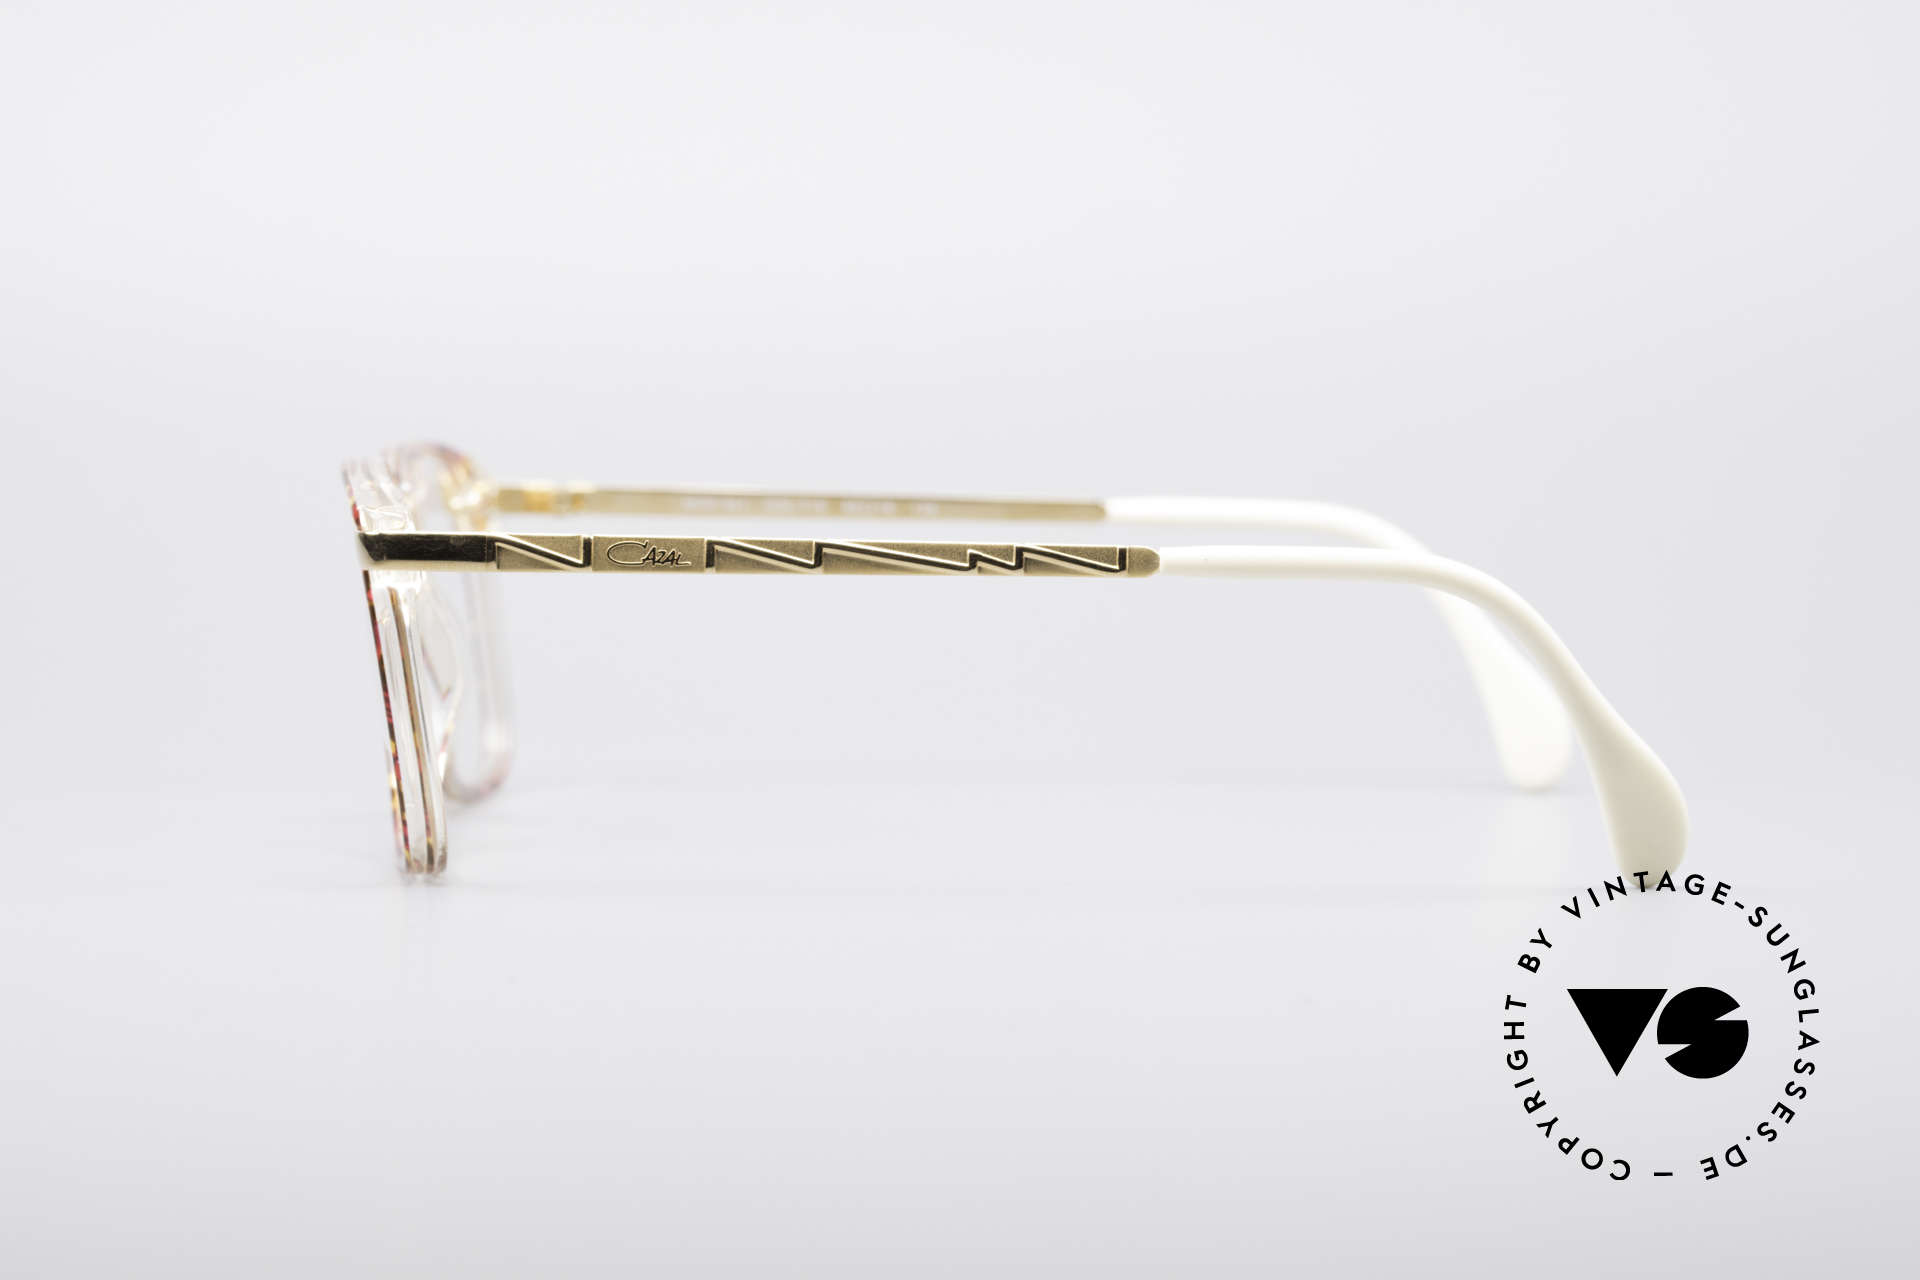 Cazal 341 Vintage No Retro Glasses 90s, NO RETRO glasses, but a 25 years old CAZAL rarity!, Made for Women